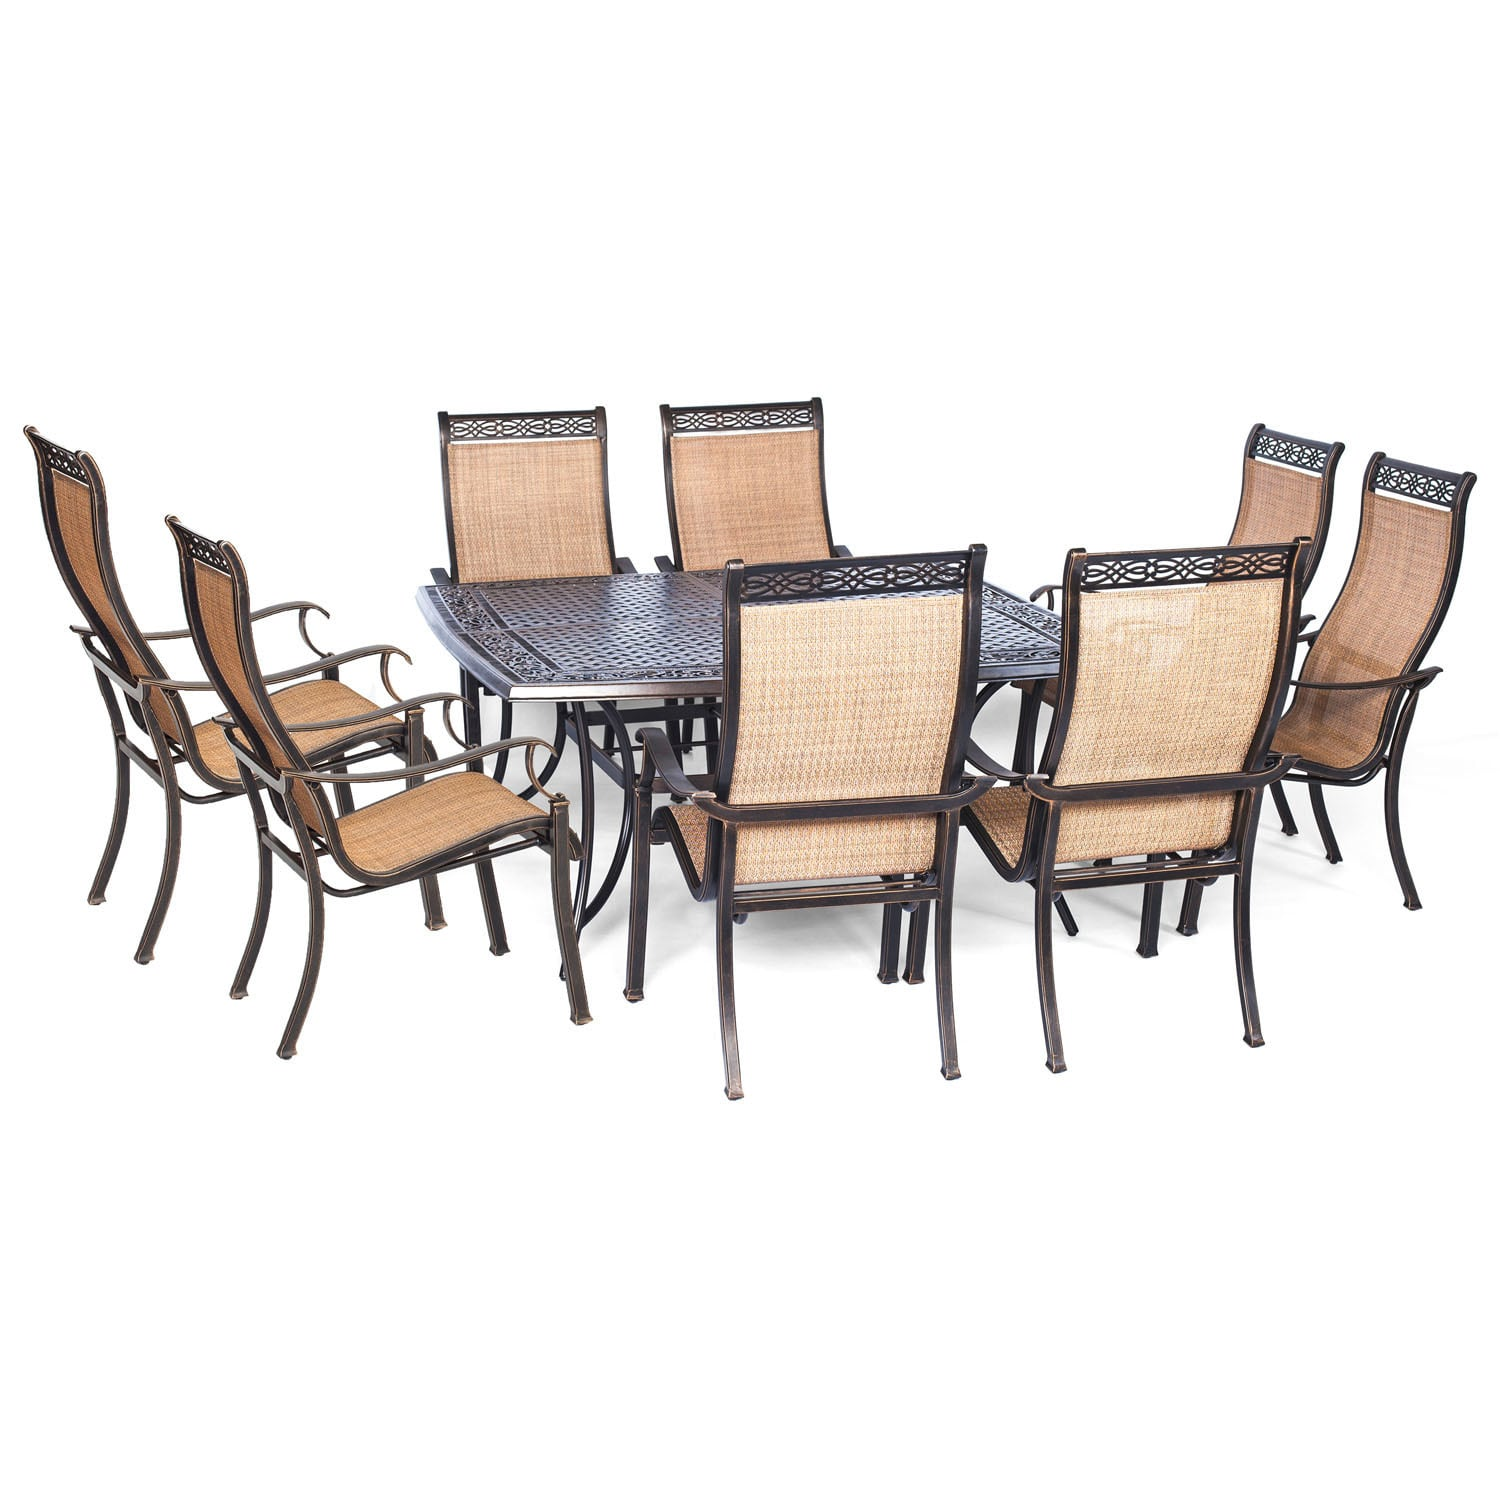 Overstock Cambridge Outdoor Legacy 9 - piece Dining Set With Large Square Table,